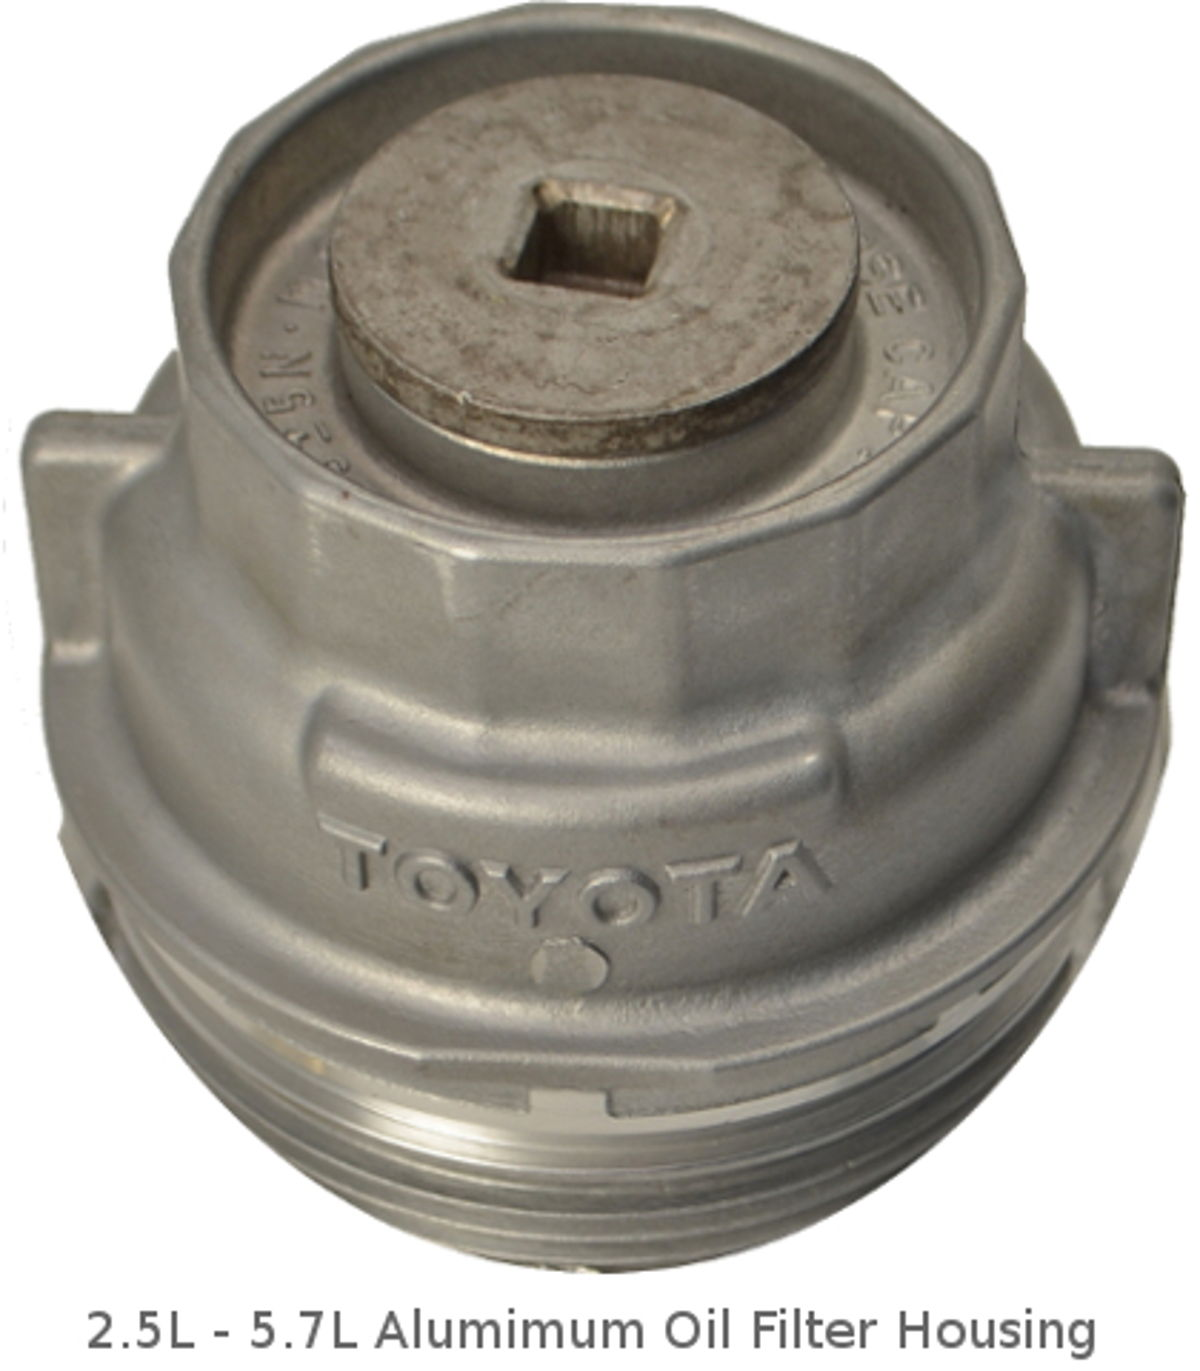 2.5L - 5.7L toyota aluminum oil filter housing